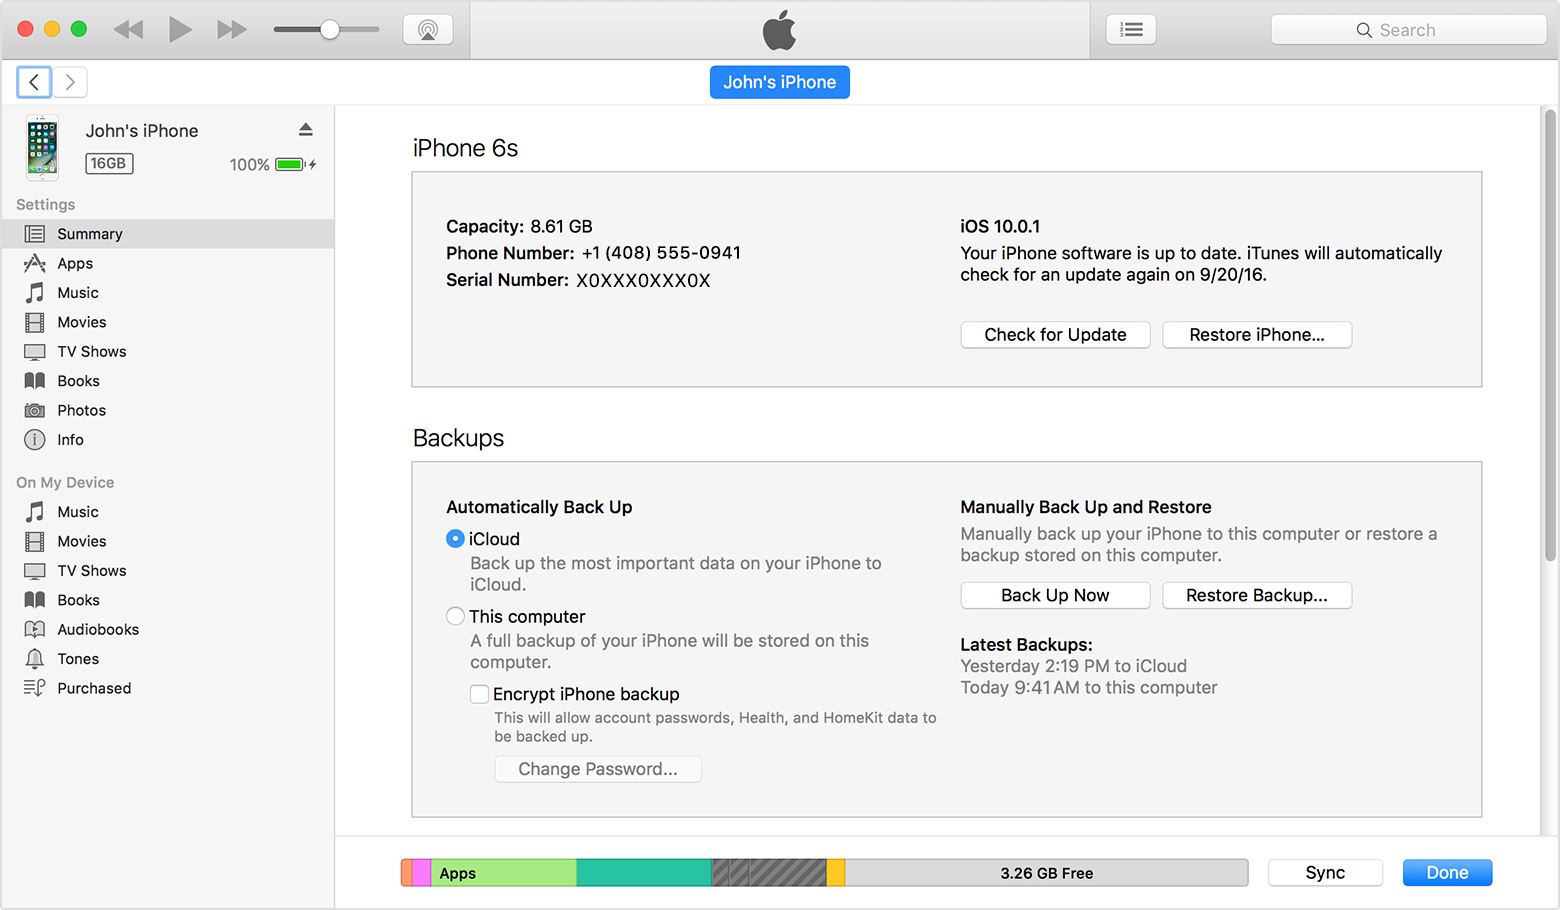 Make an iTunes backup of your iPhone, iPad, or iPod touch